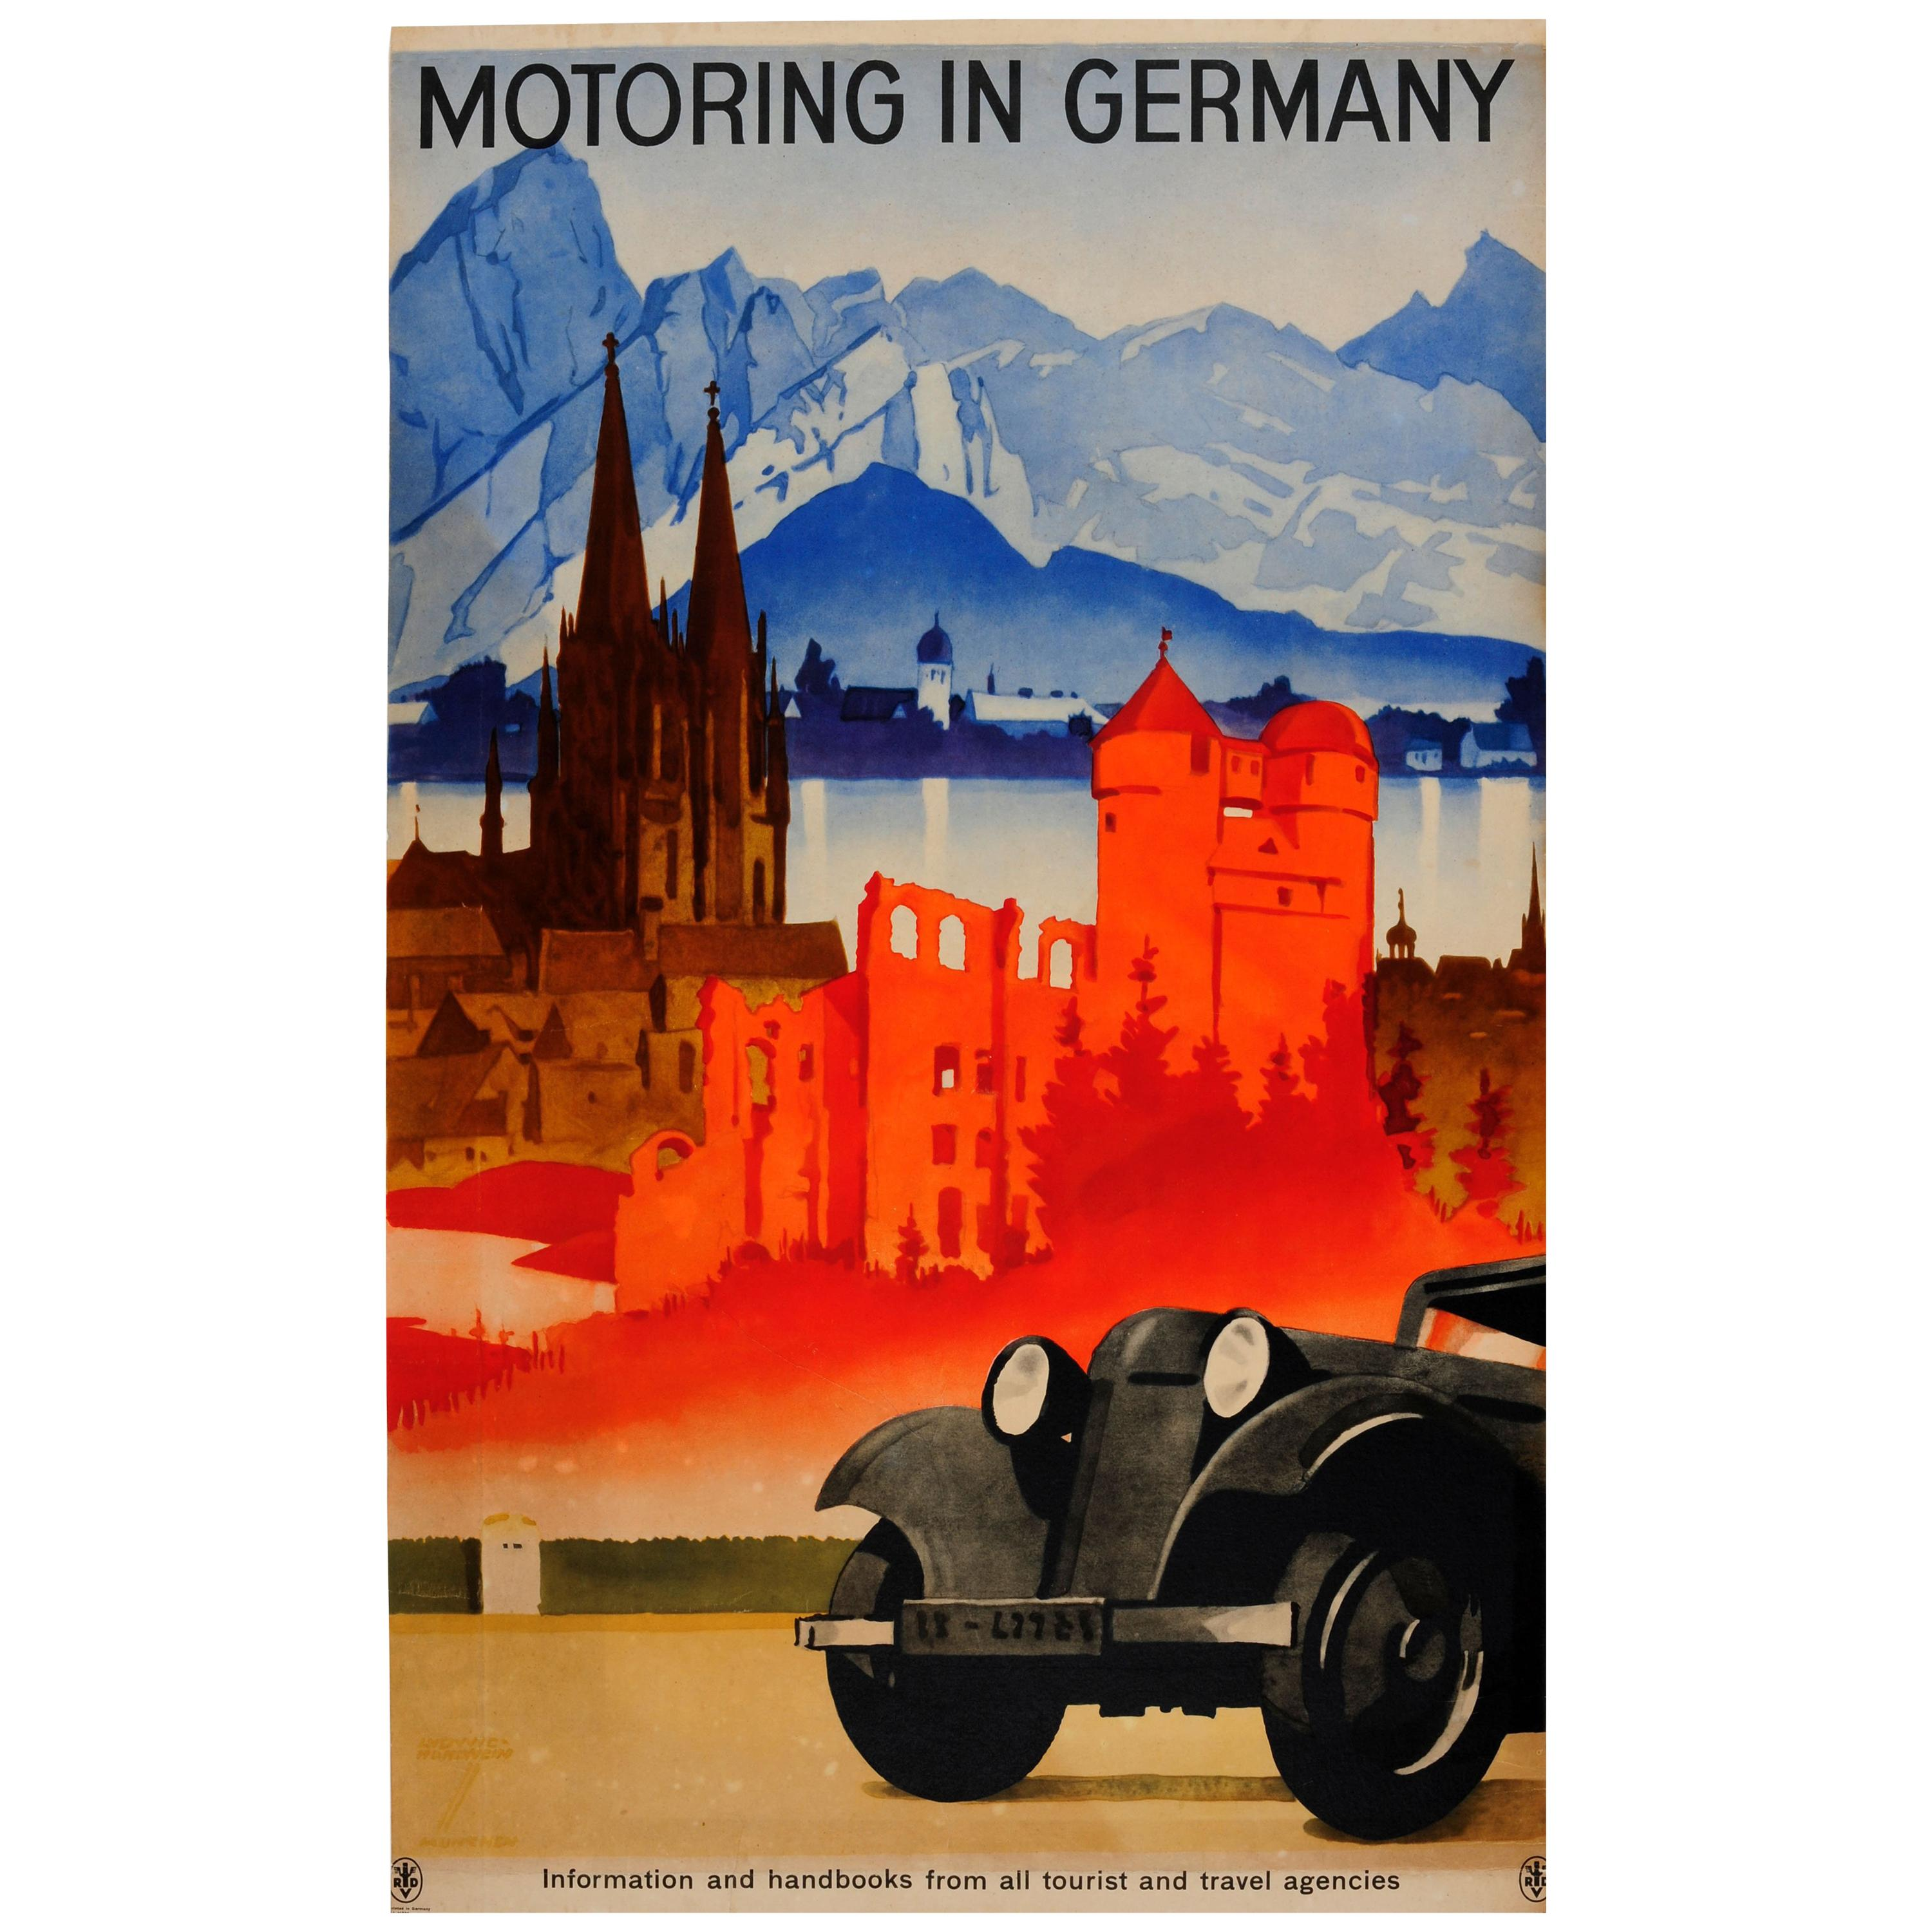 Original Vintage Travel Poster by Hohlwein Motoring in Germany Classic Car Tours